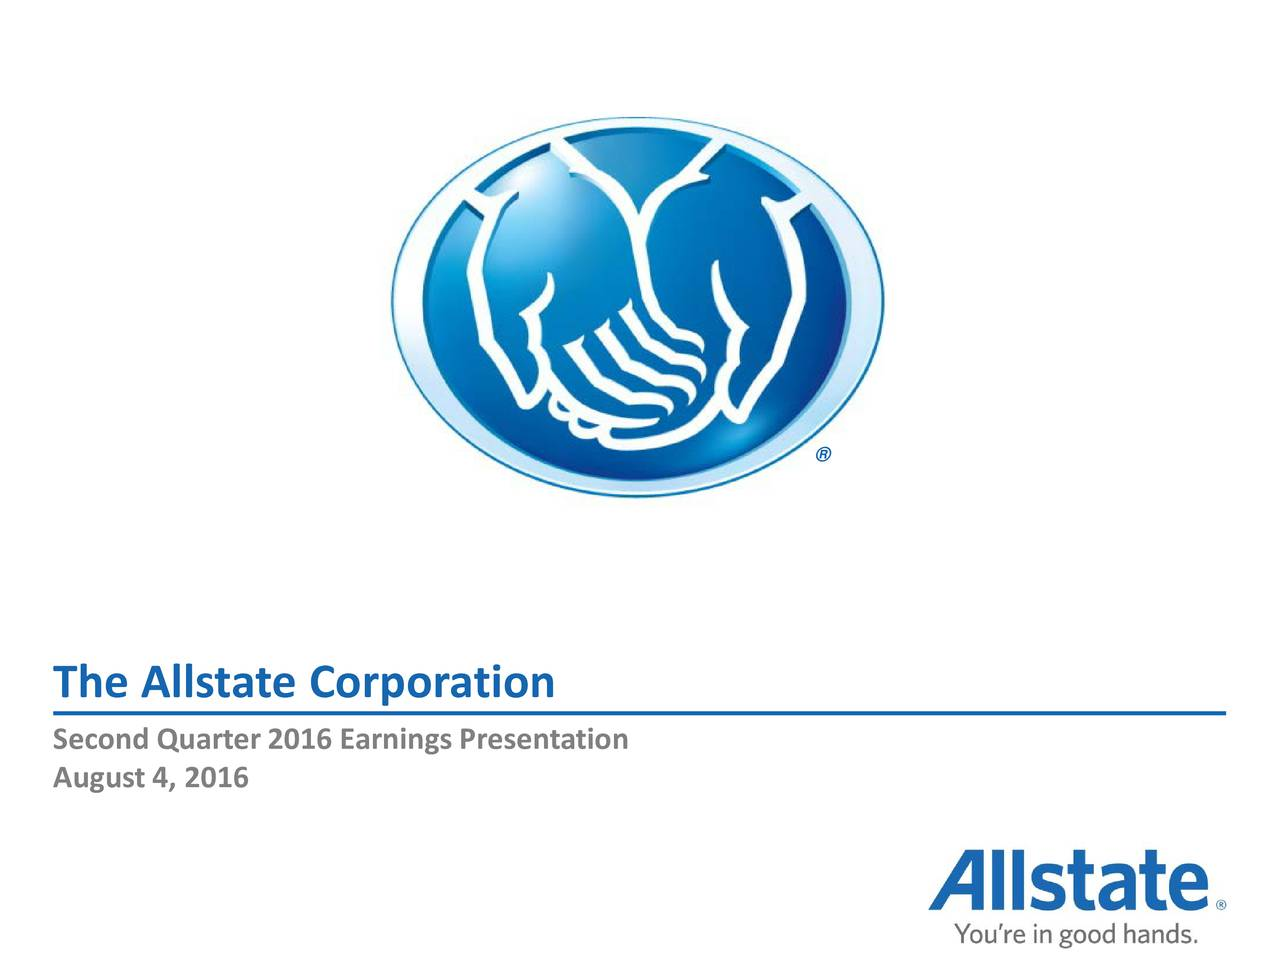 The Allstate Corporation Second Quarter 2016 Earnings Presentation August 4, 2016